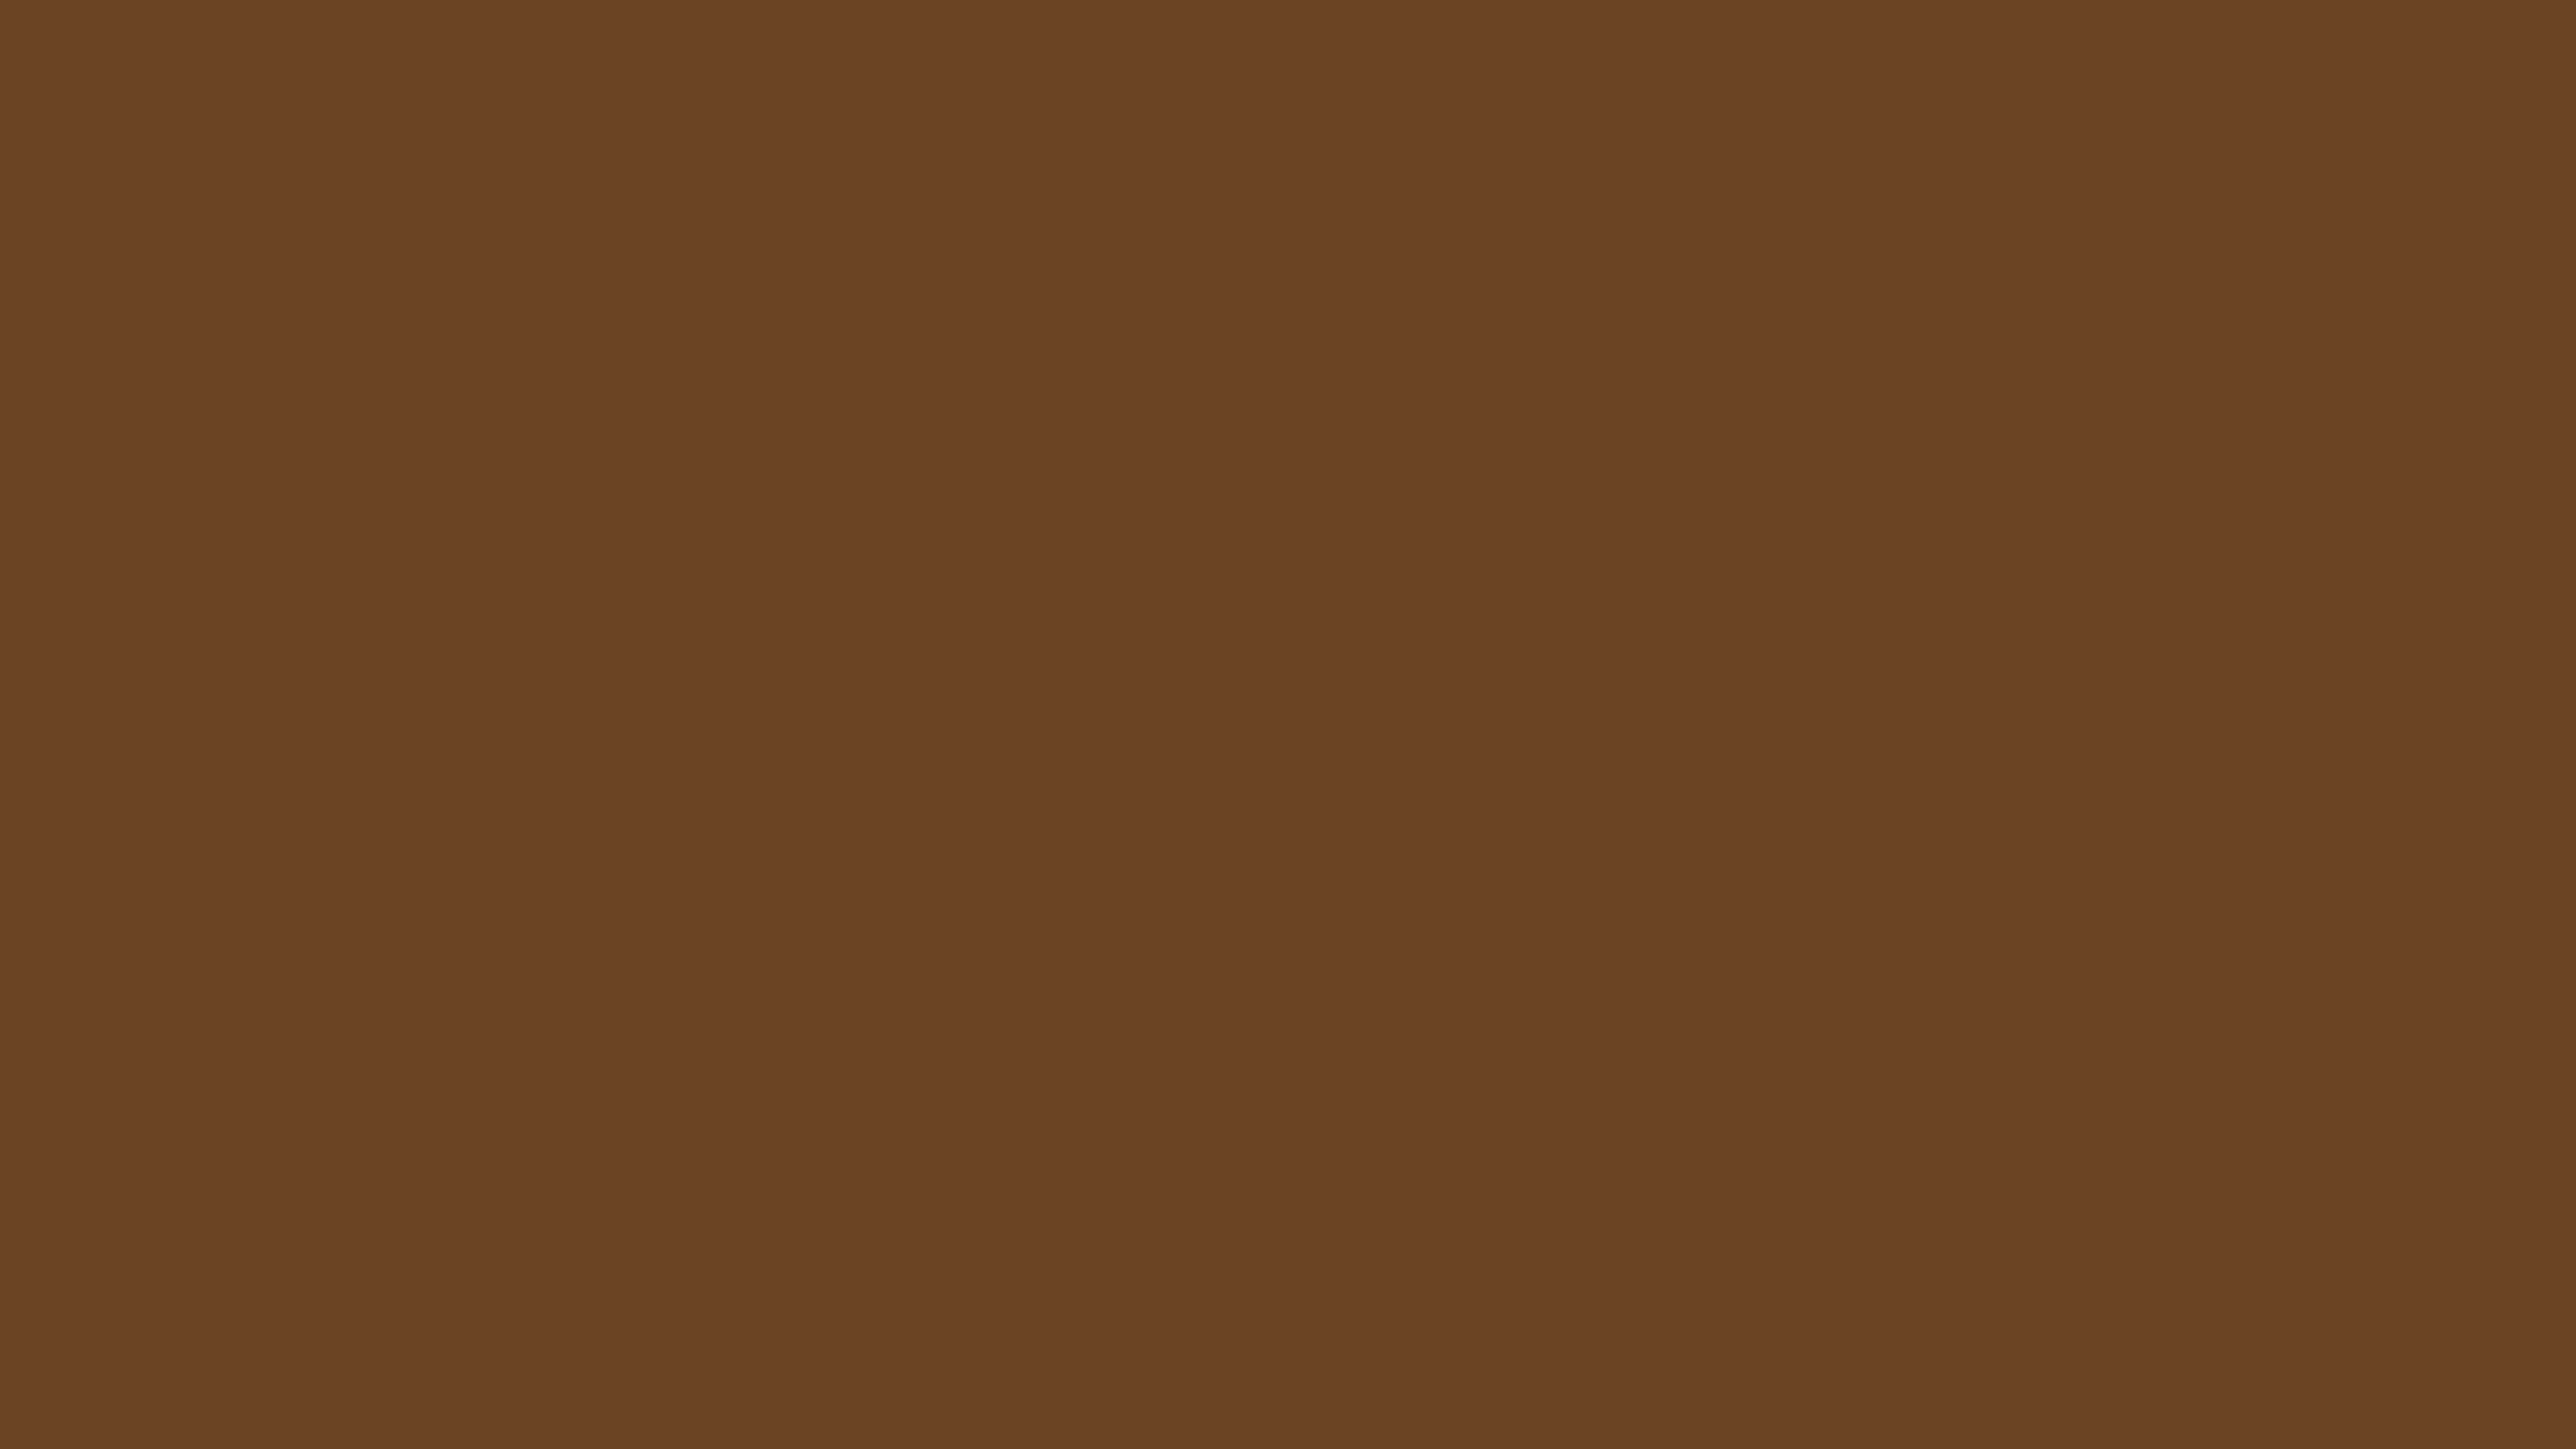 7680x4320 Brown-nose Solid Color Background